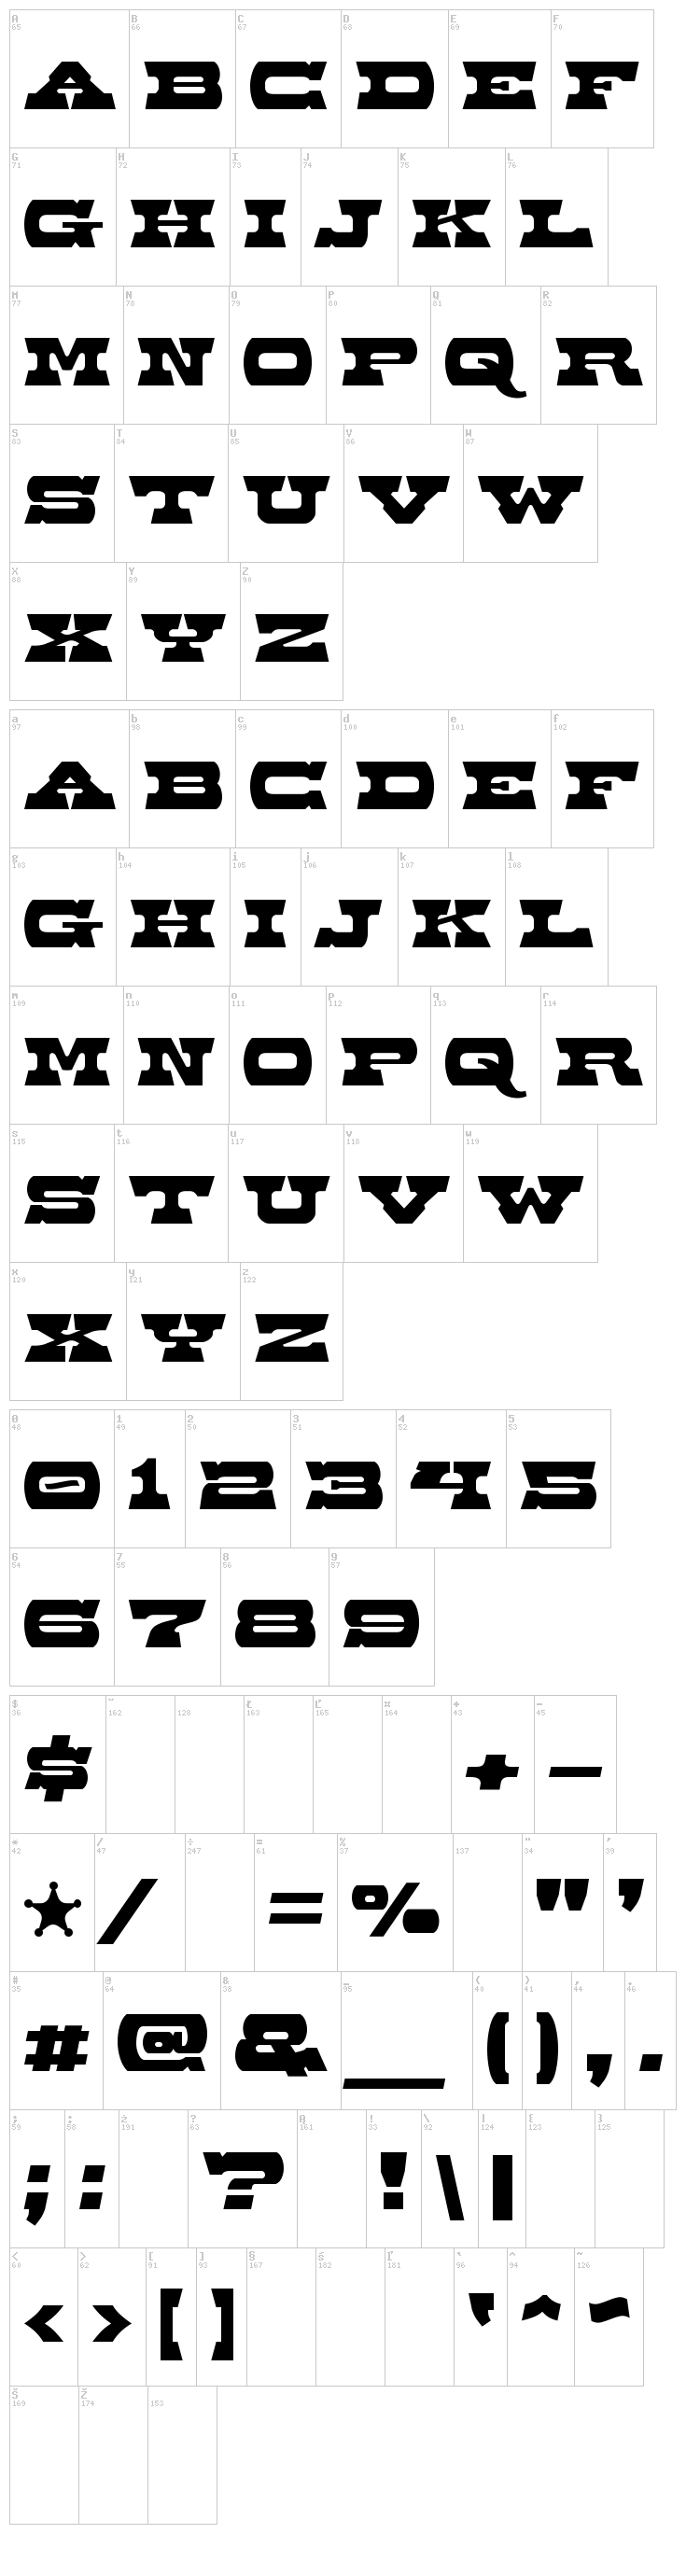 Baccer font map